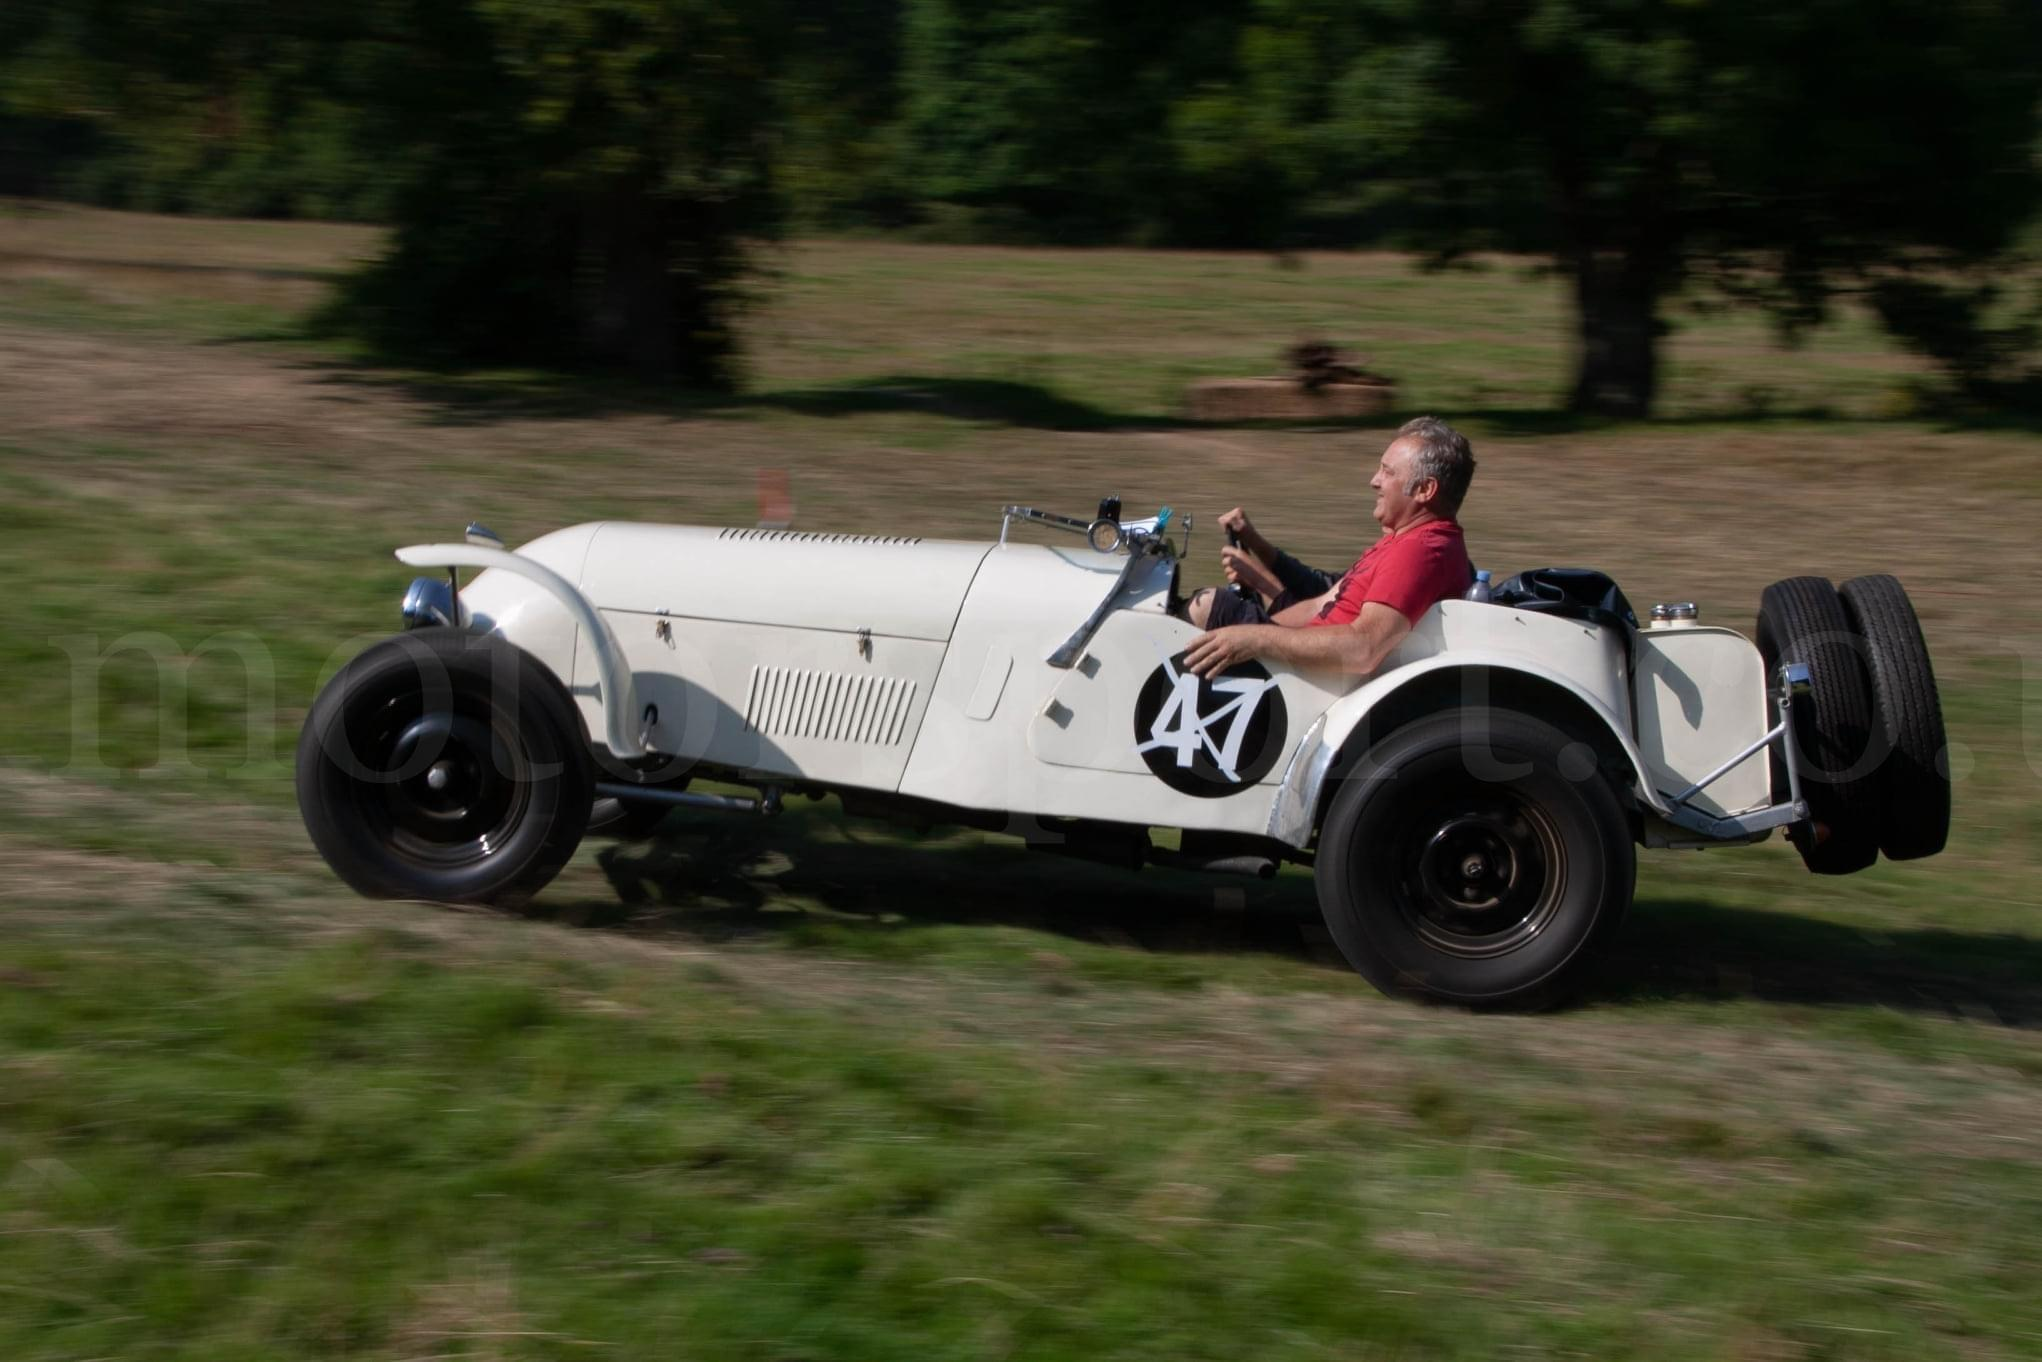 Appleton Special returns to trialling August 2020